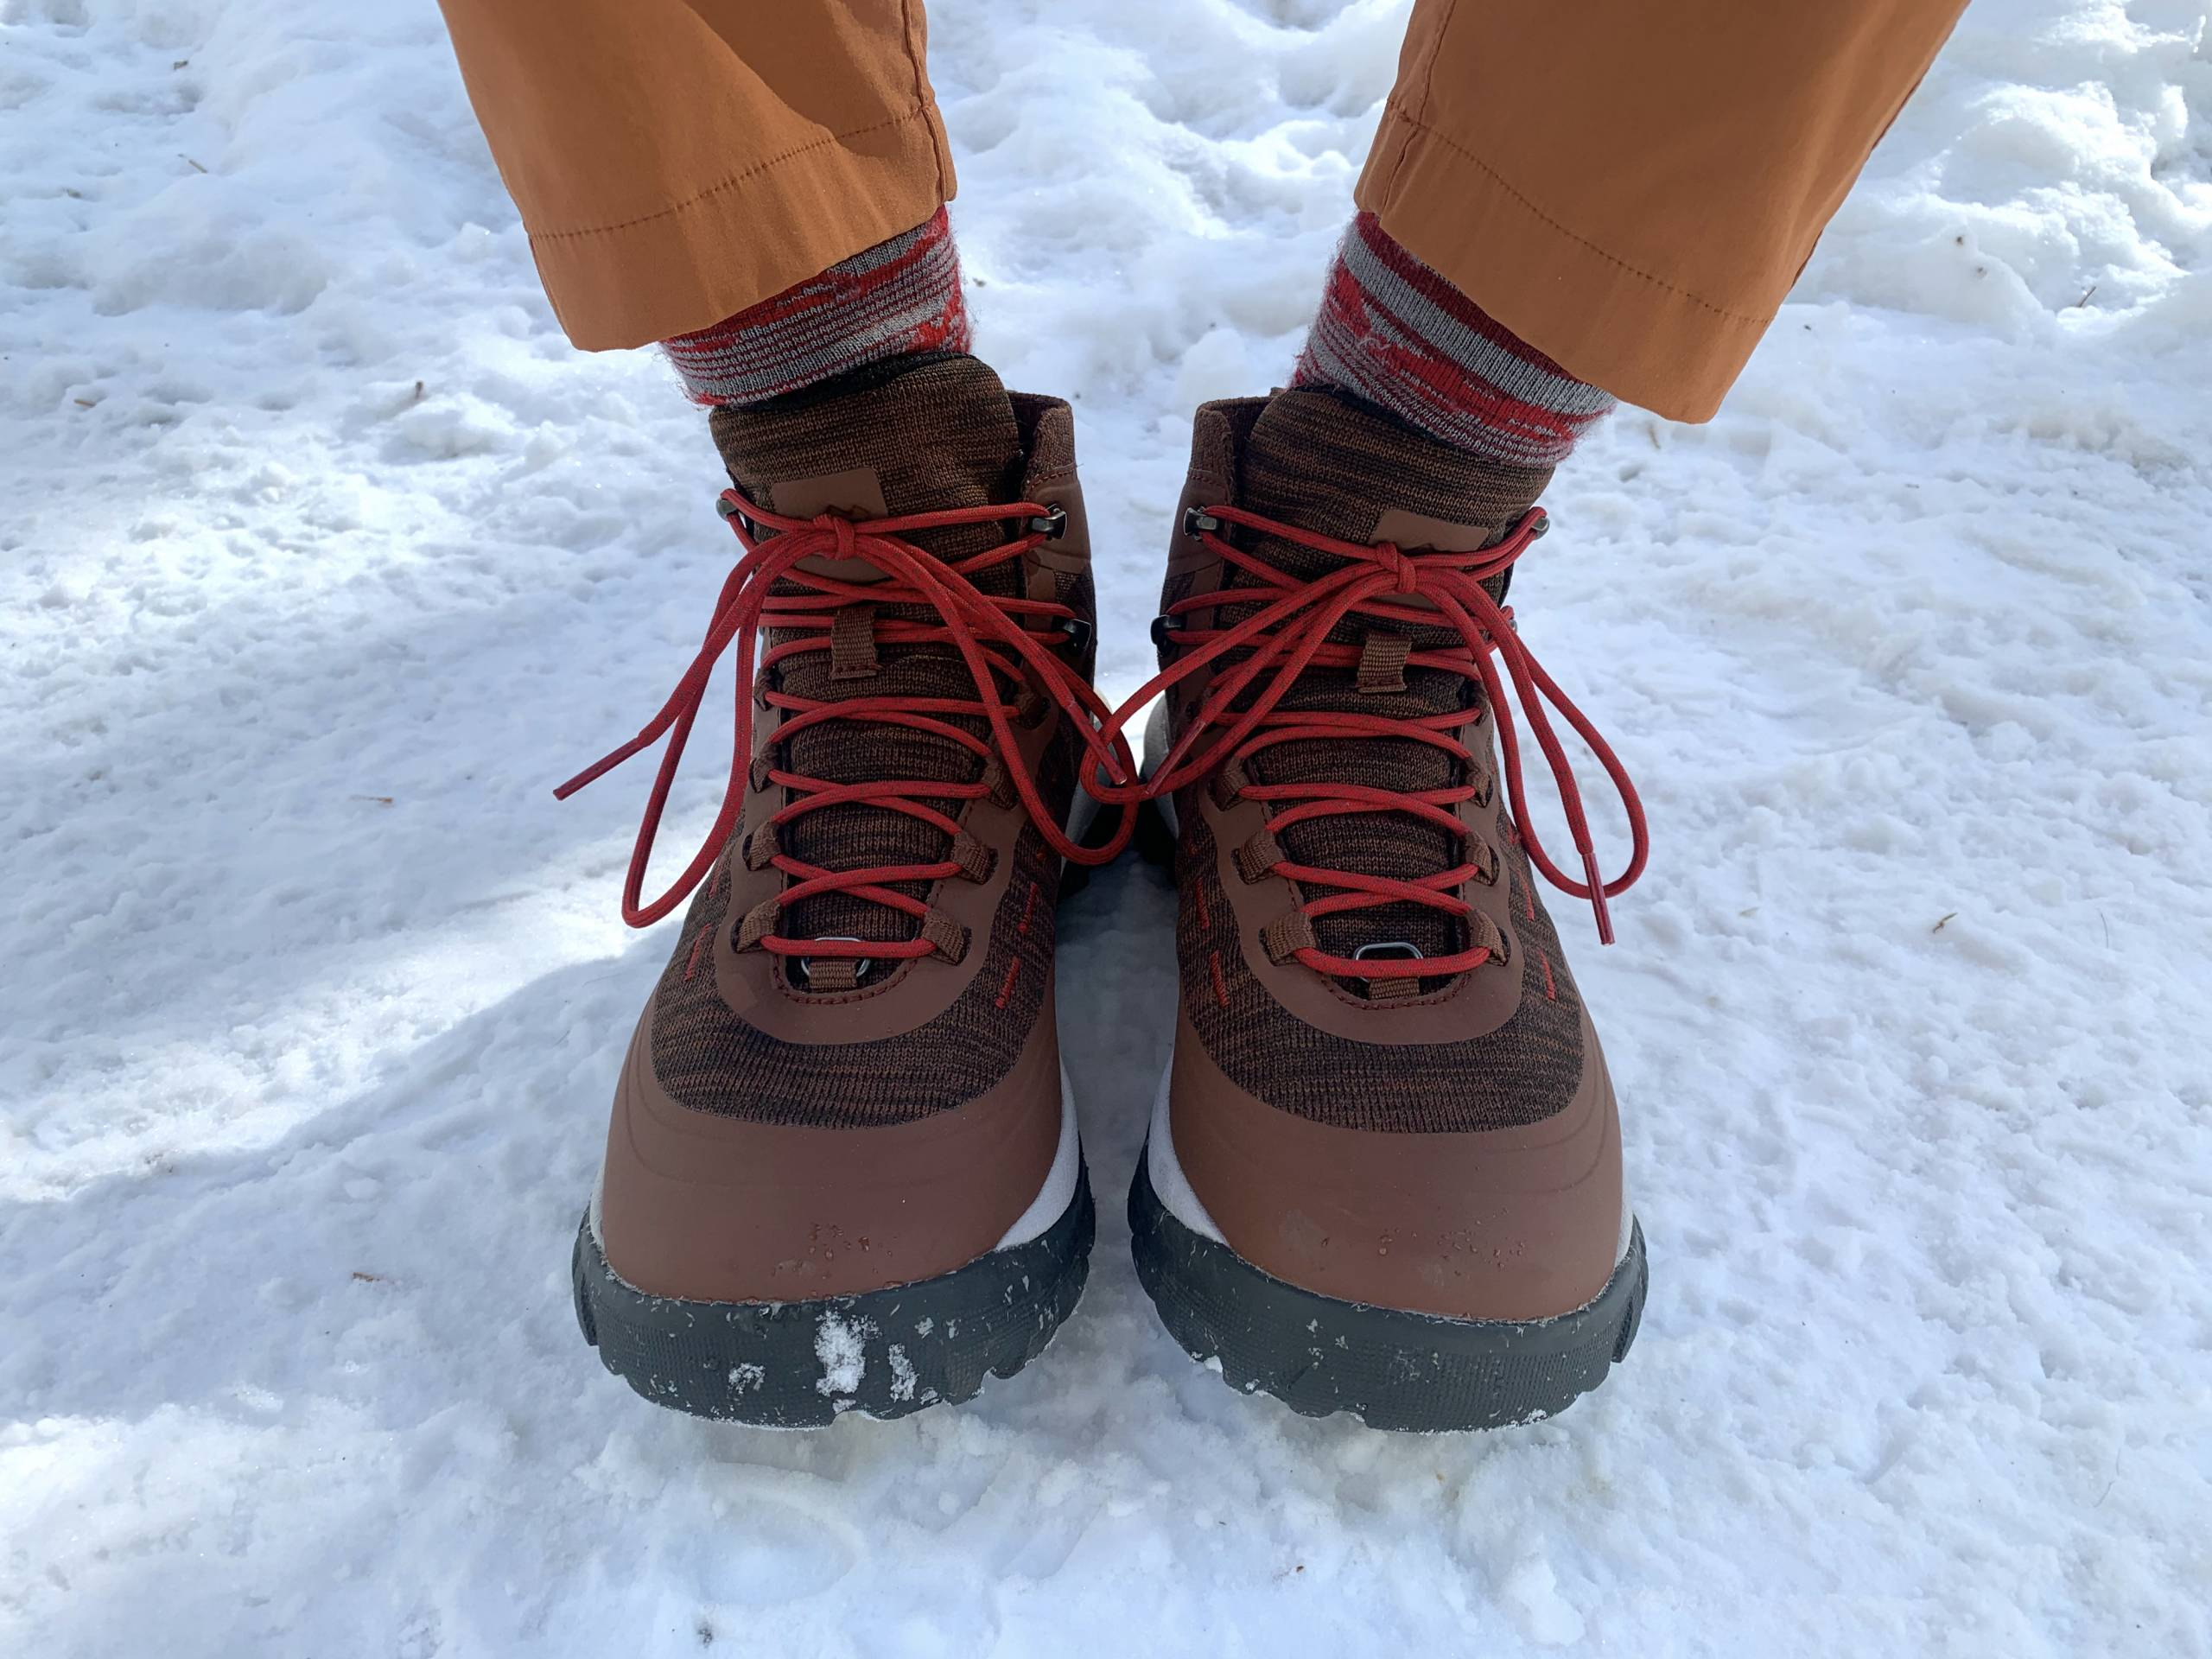 Author wearing pair of brown REI Traverse boots in snow, shown from ankles down